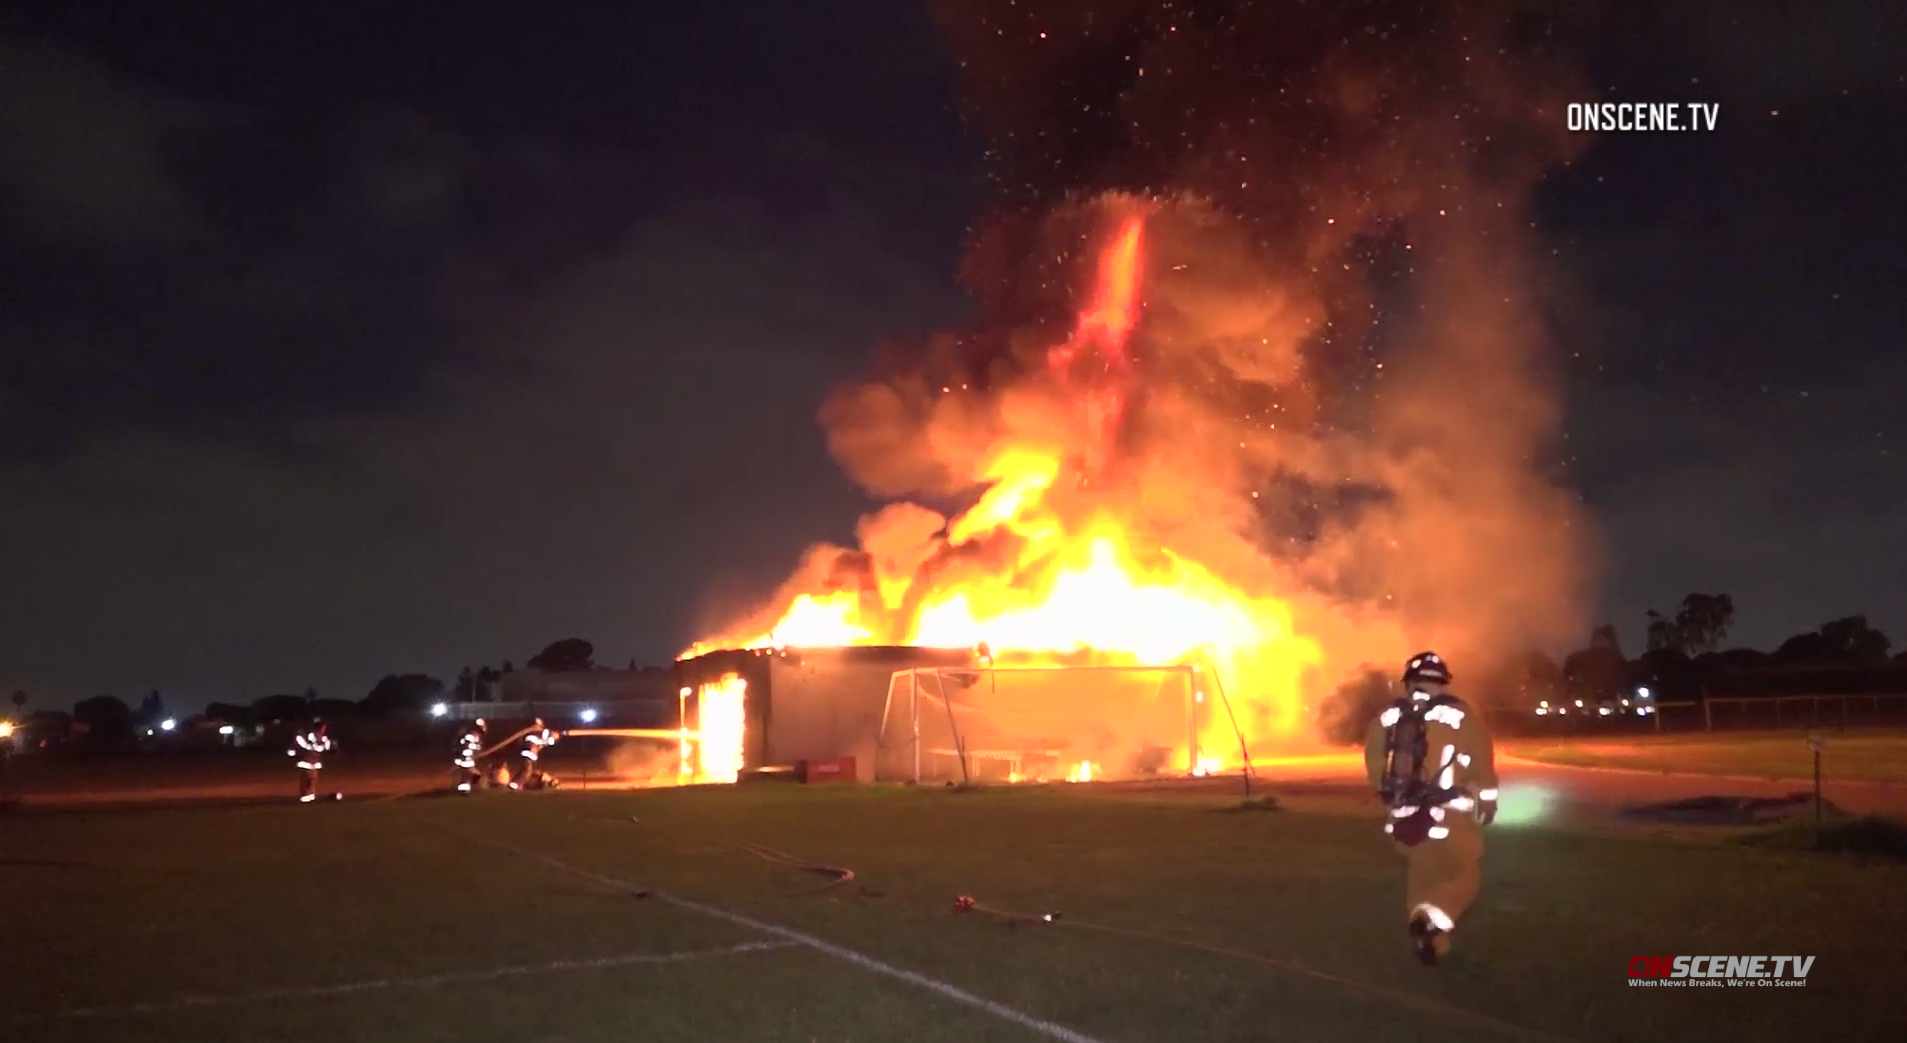 Firefighters battle a fire in an equipment shed at Magnolia High School in Anaheim on July 17, 2019. (Credit: Onscene.tv)